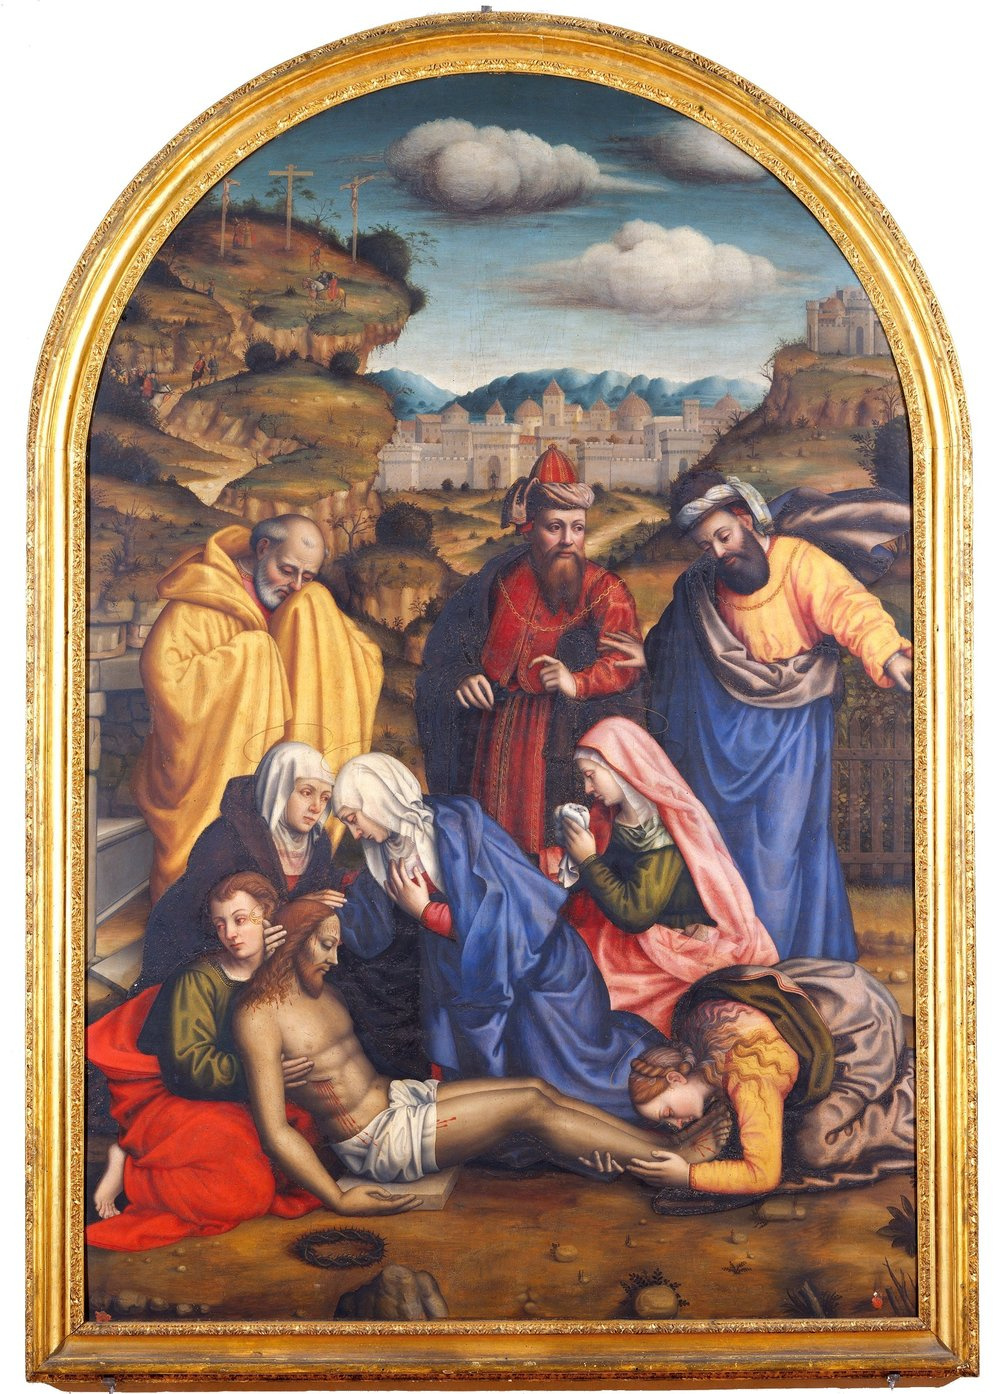 Plautilla Nelly. Lamentation for Christ with the saints